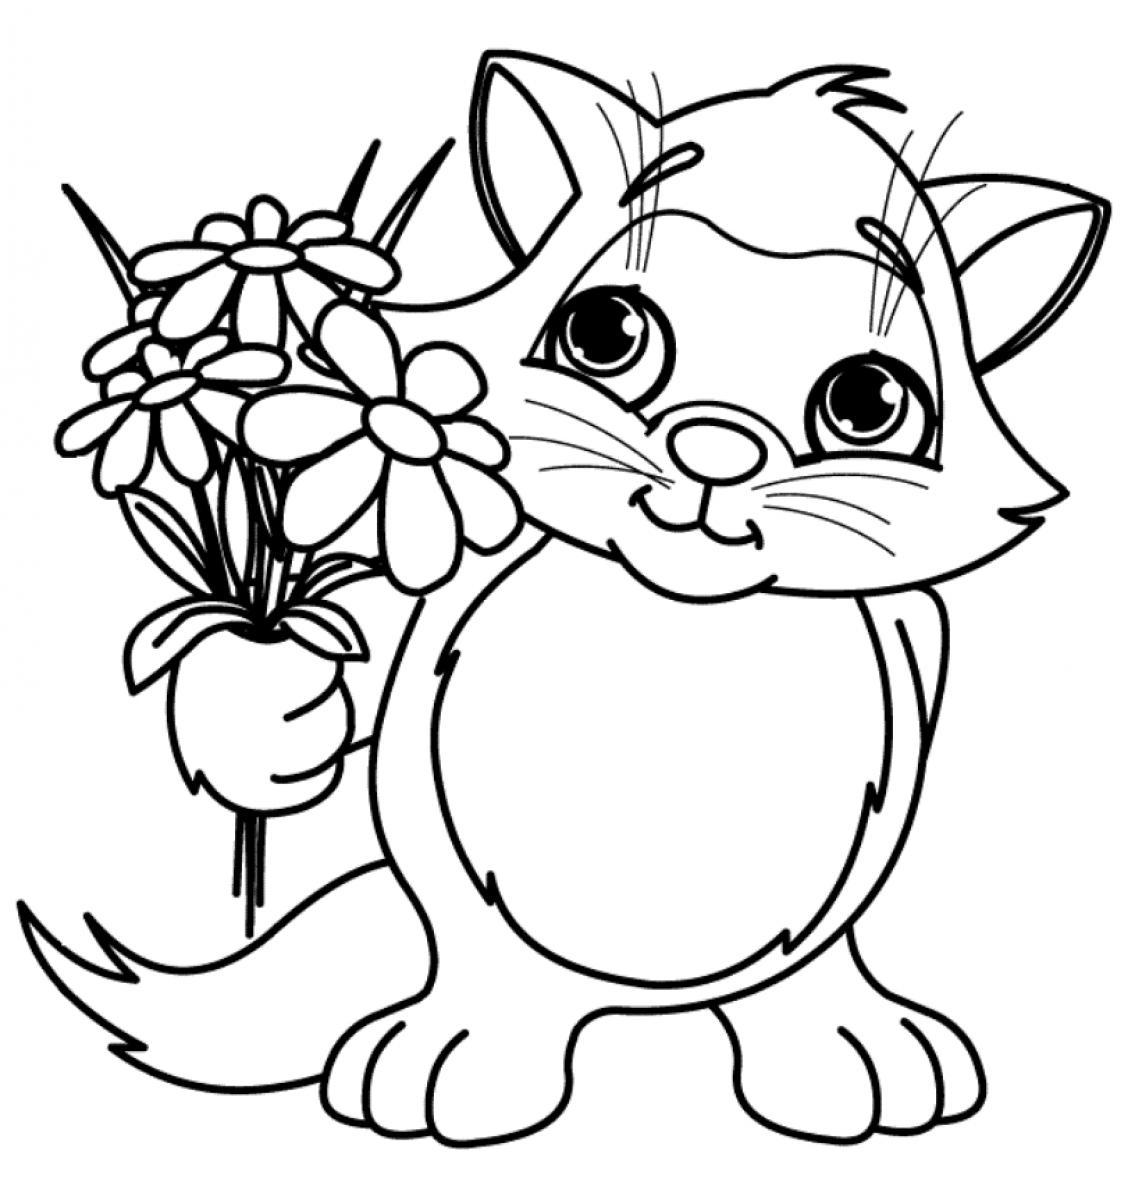 cute kittens coloring pages kitten coloring pages at getdrawings free download cute pages kittens coloring